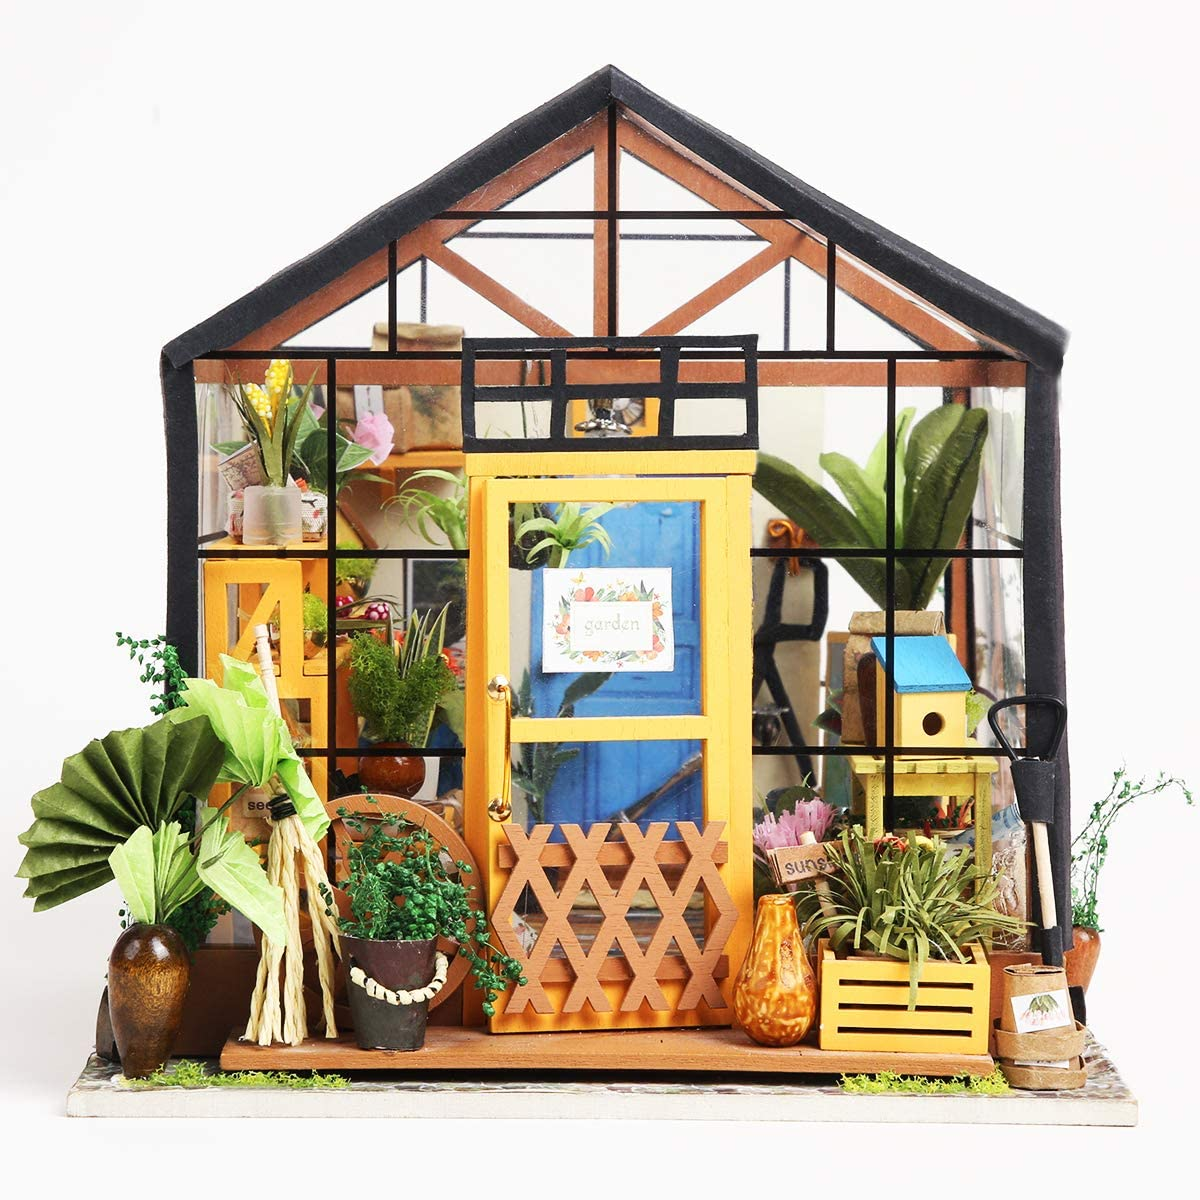 Rolife Dollhouse Wooden Room Kit-Flower Green House-Home Decoration-Miniature Model to Build